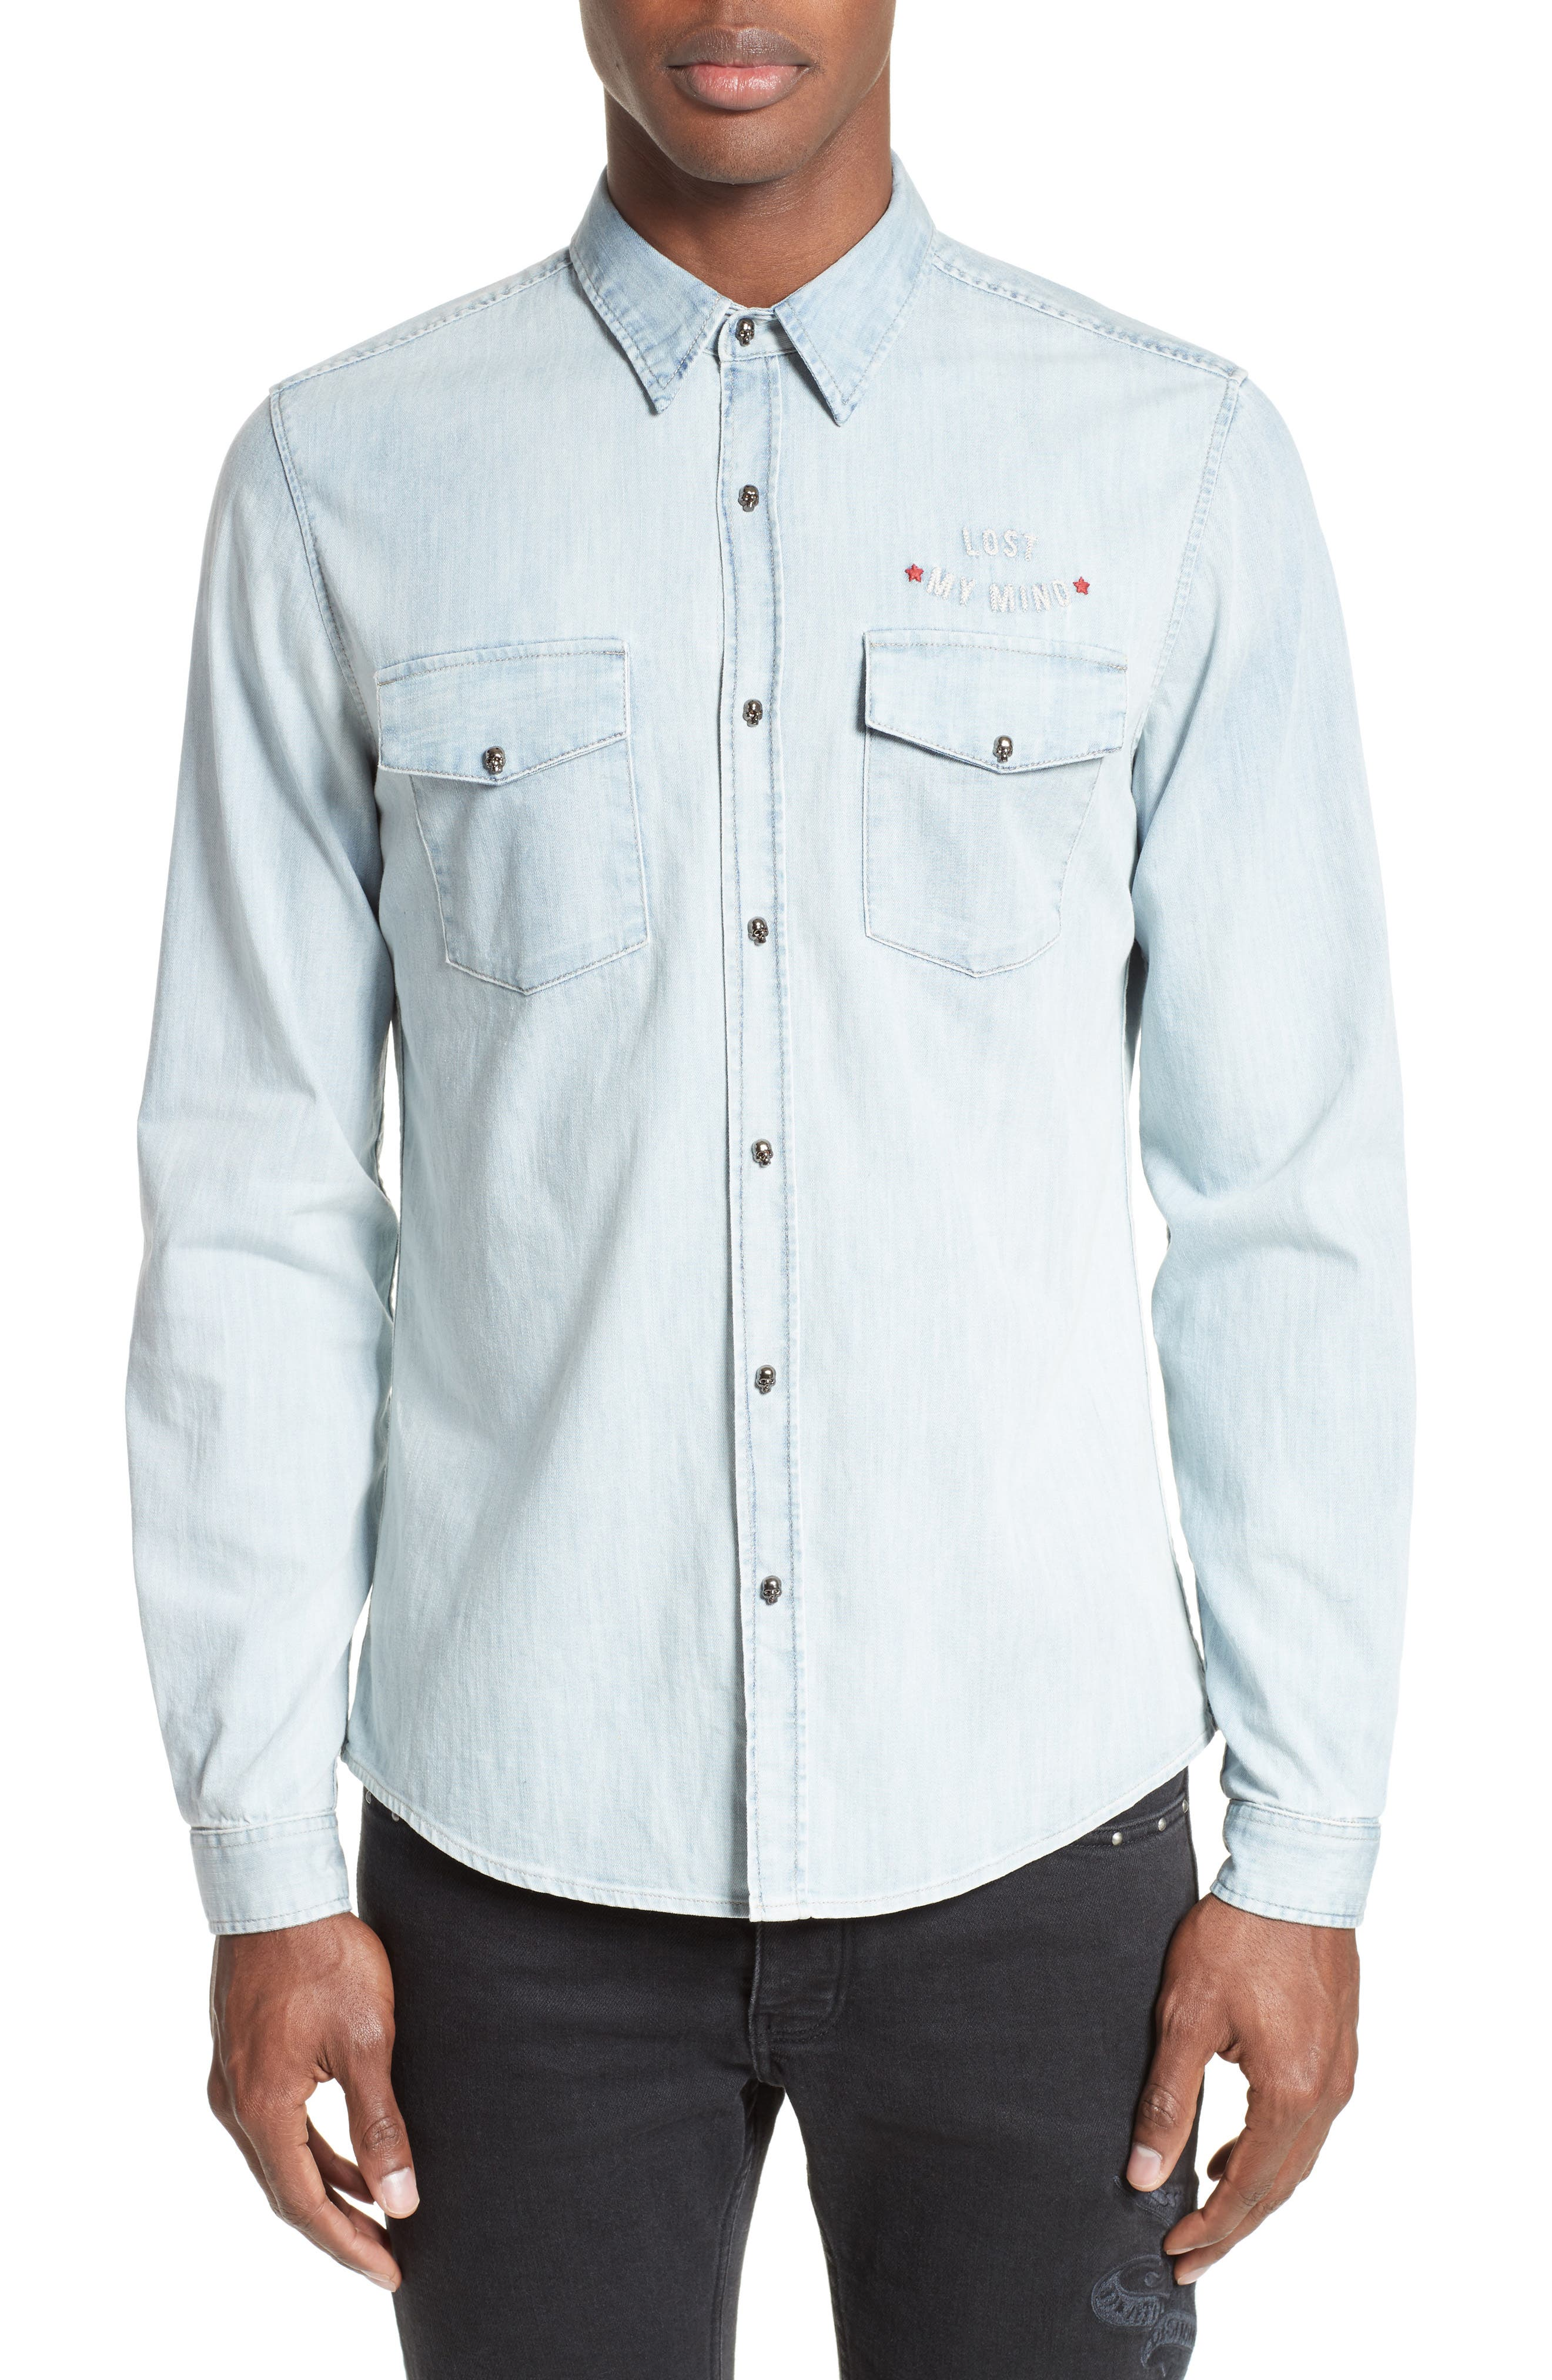 The Kooples Embroidered Denim Shirt